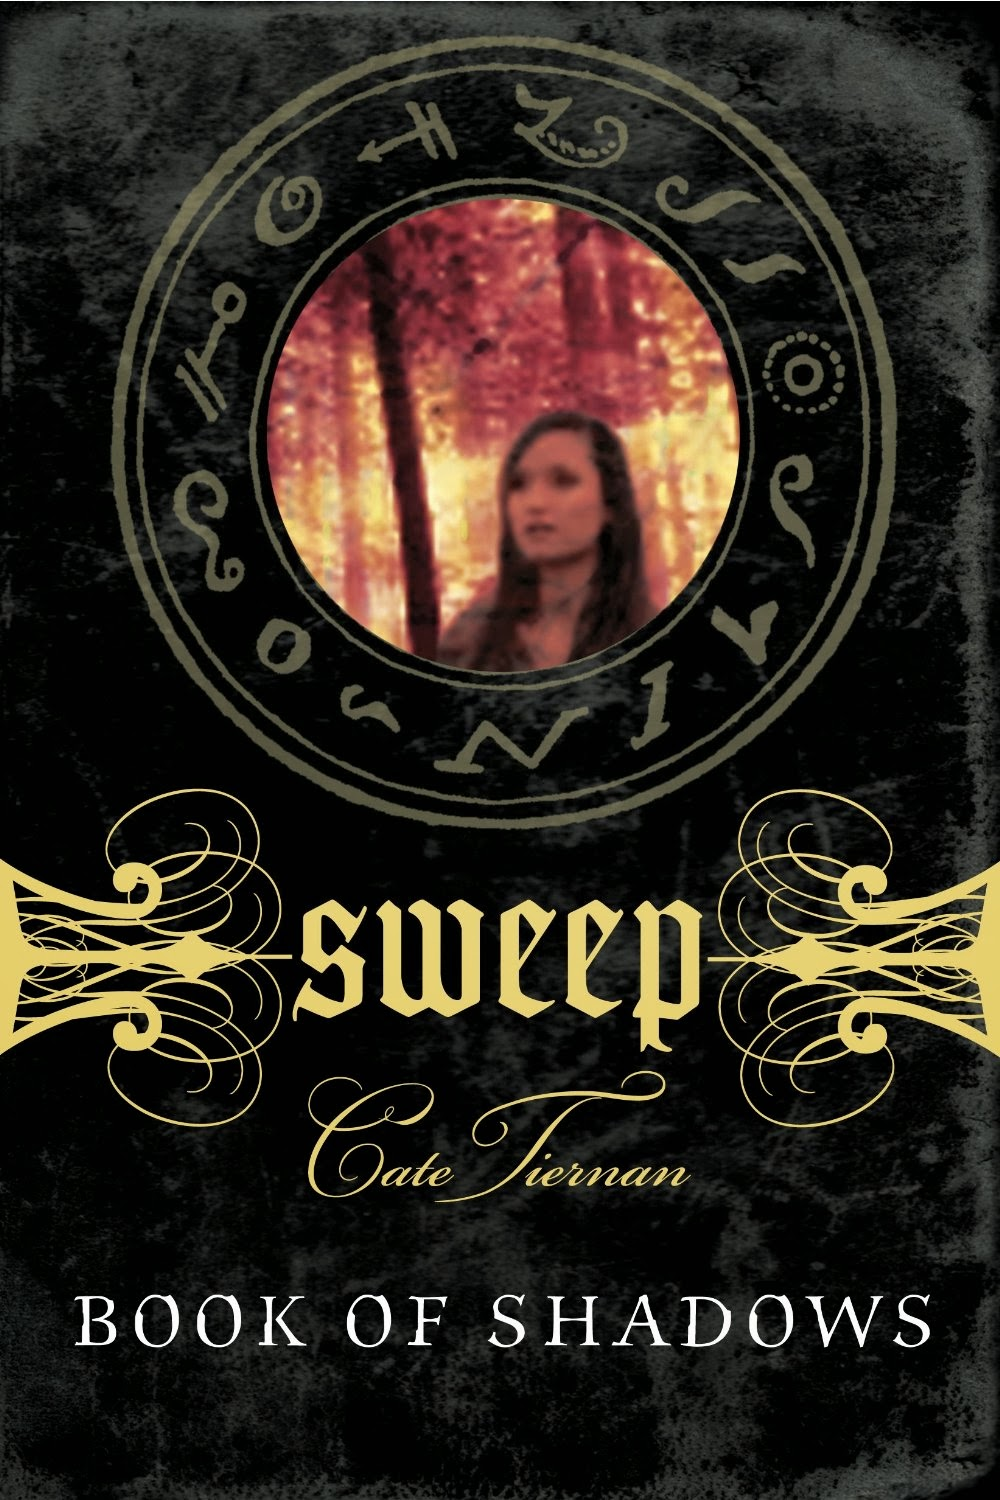 Sweep: Book of Shadows by Cate Tiernan cover